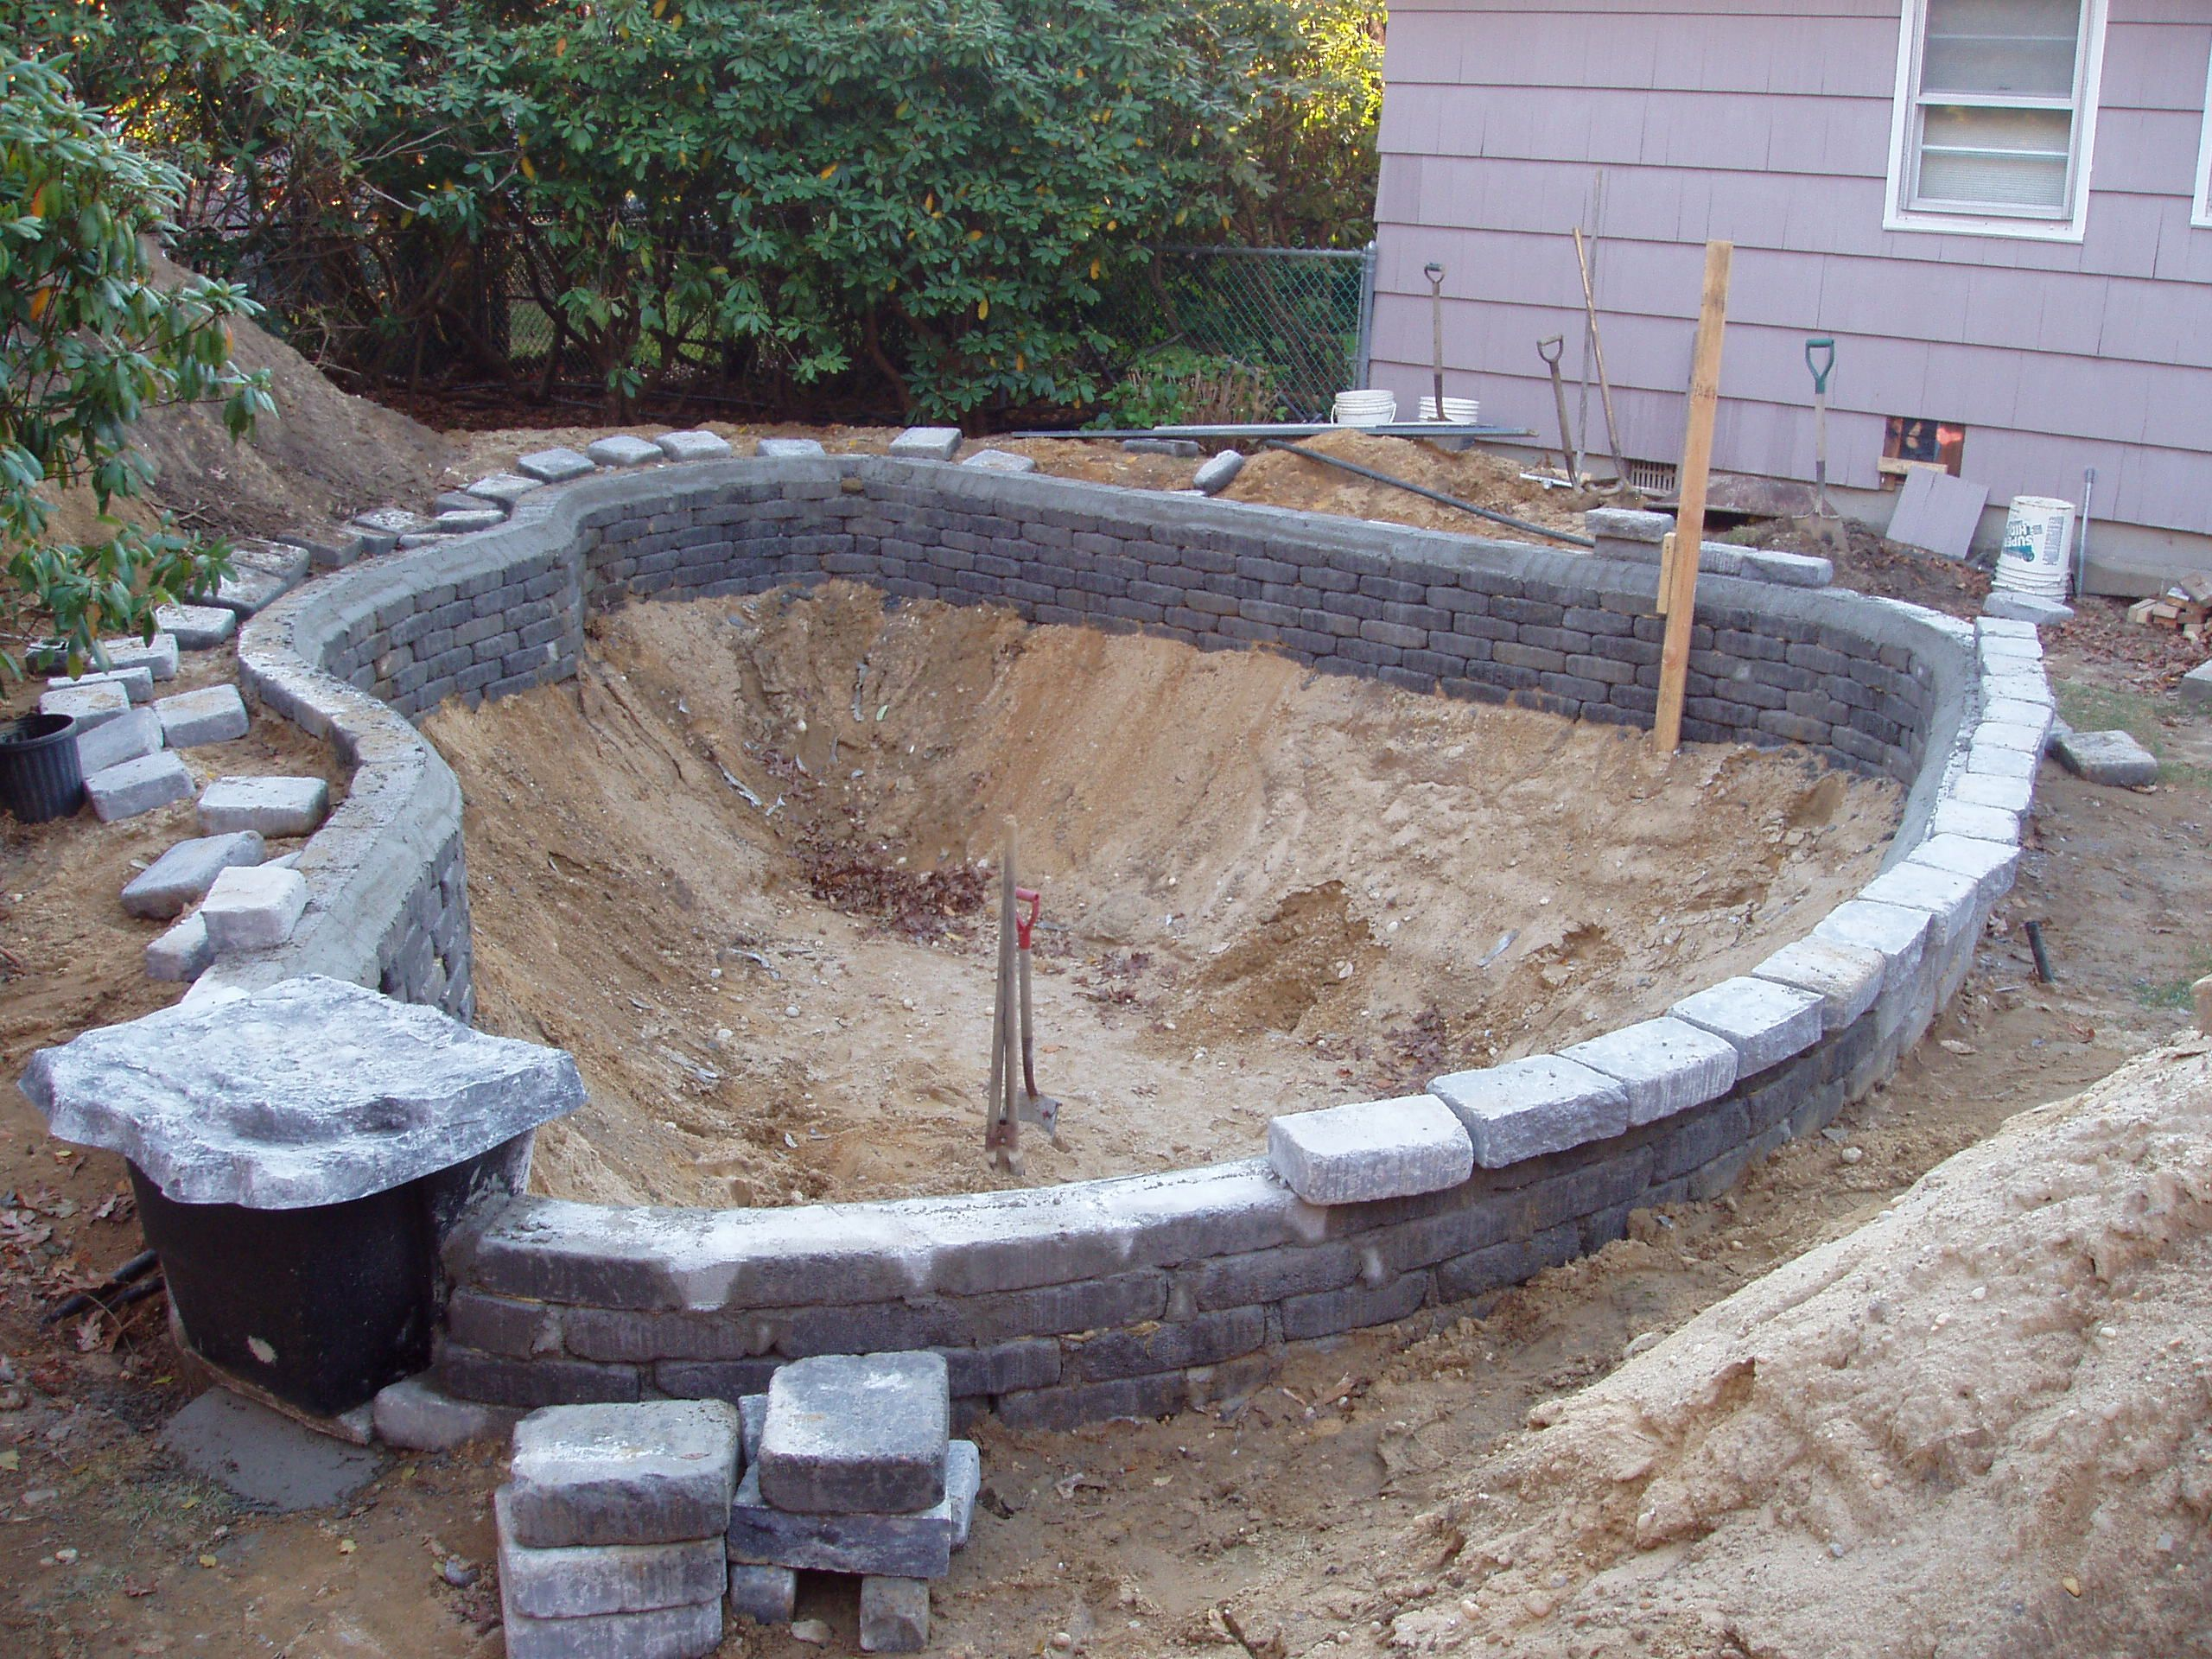 Pond design and construction google search aquaponics for Small garden fish pond designs